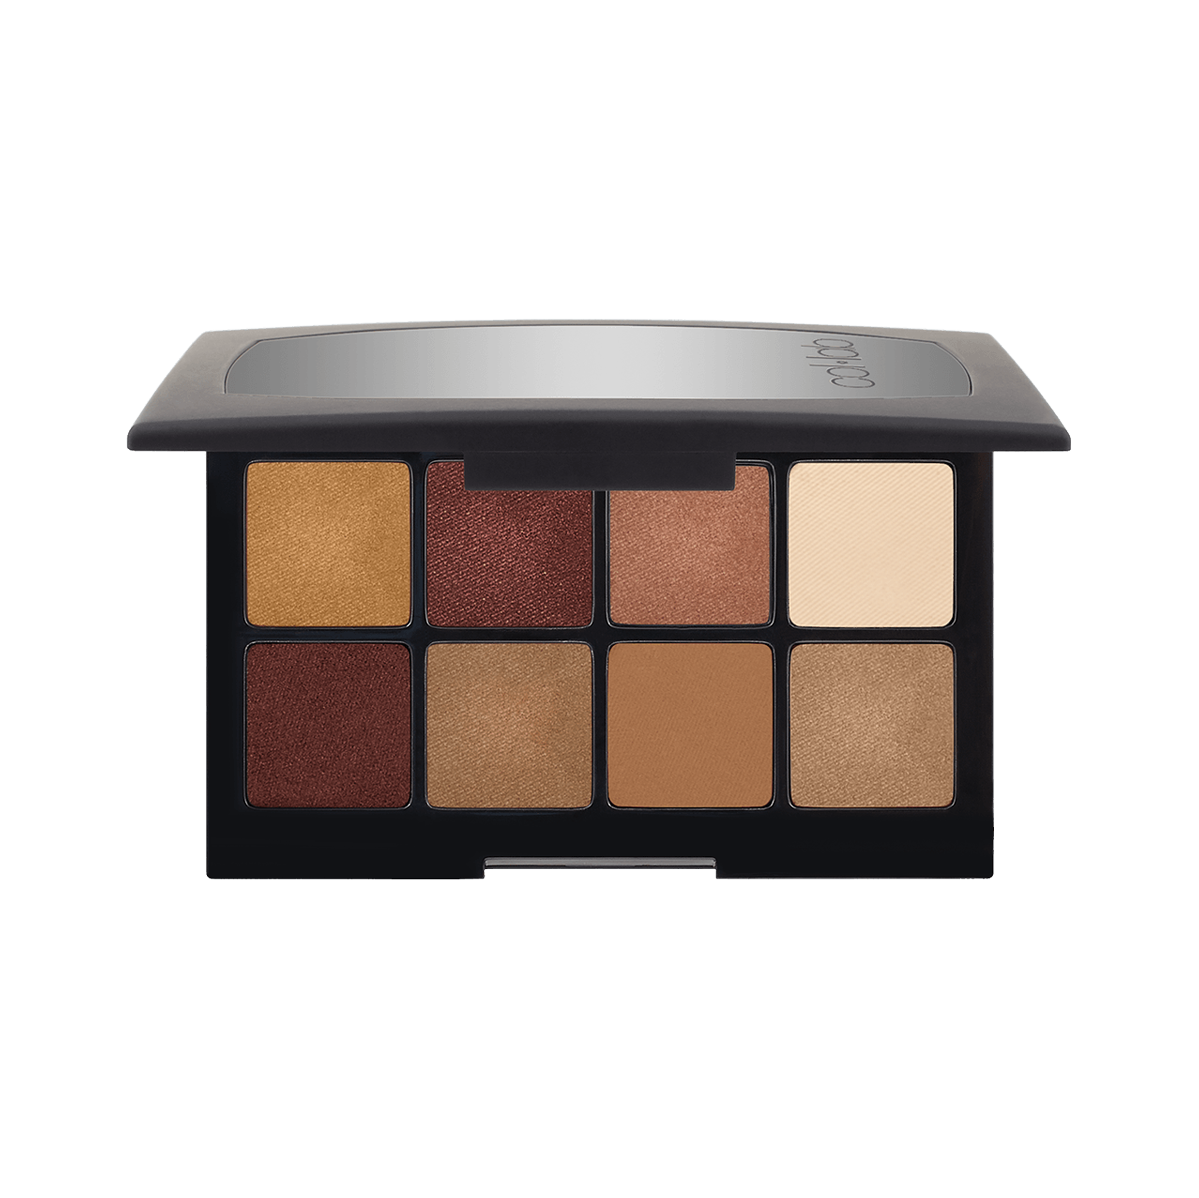 collab-palette-pro-getreadywithme-open.png